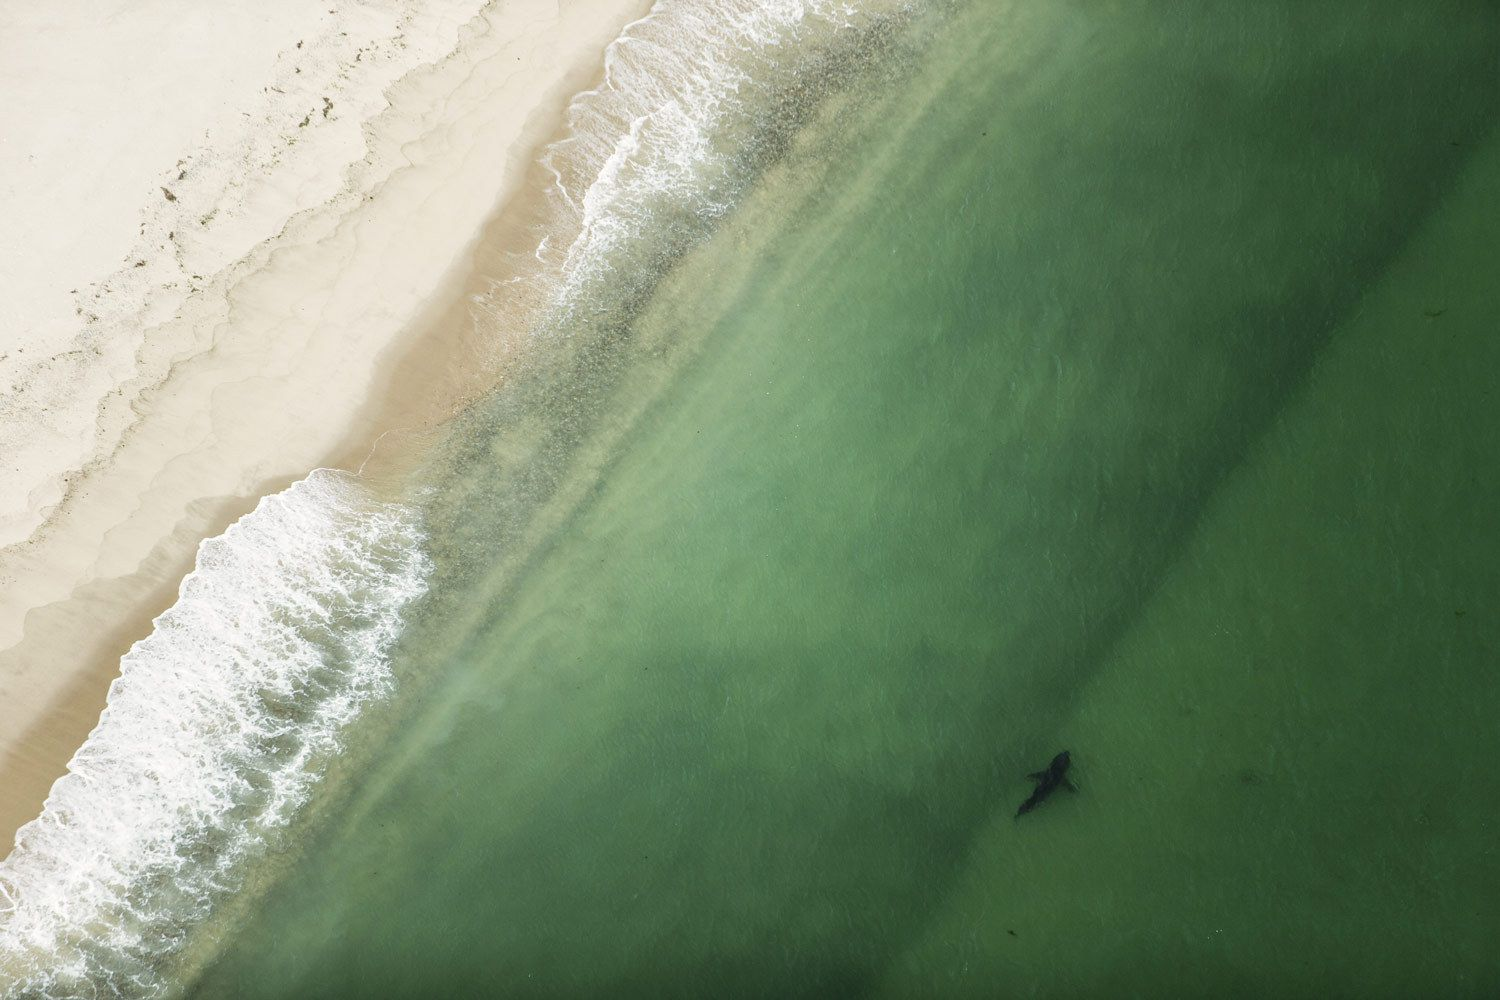 1great_white_shark_swimming_close_beach_aerial.jpg